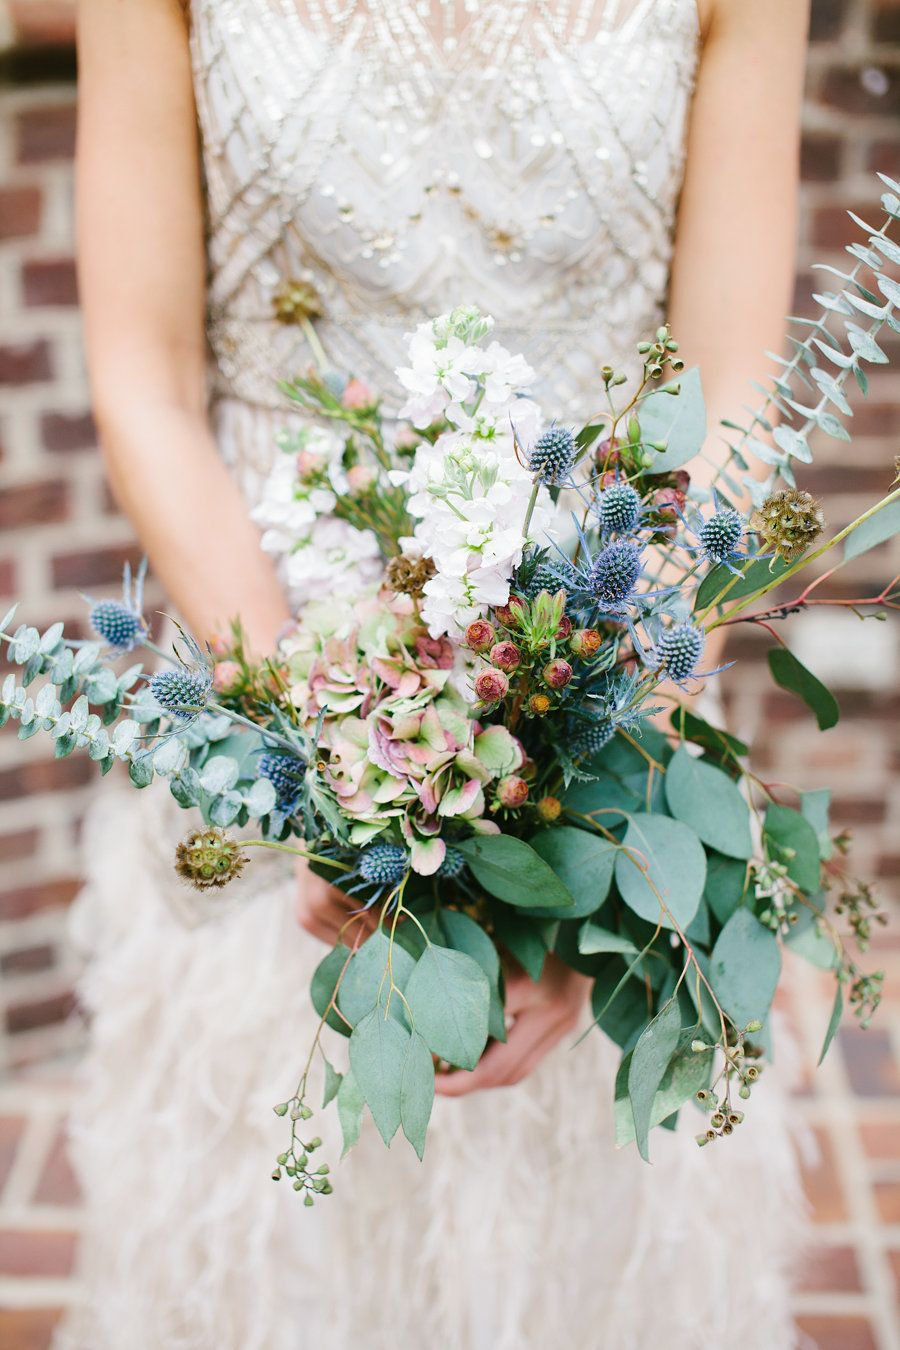 Bouquet with dusty blue accents by lily beeus sparkly wedding